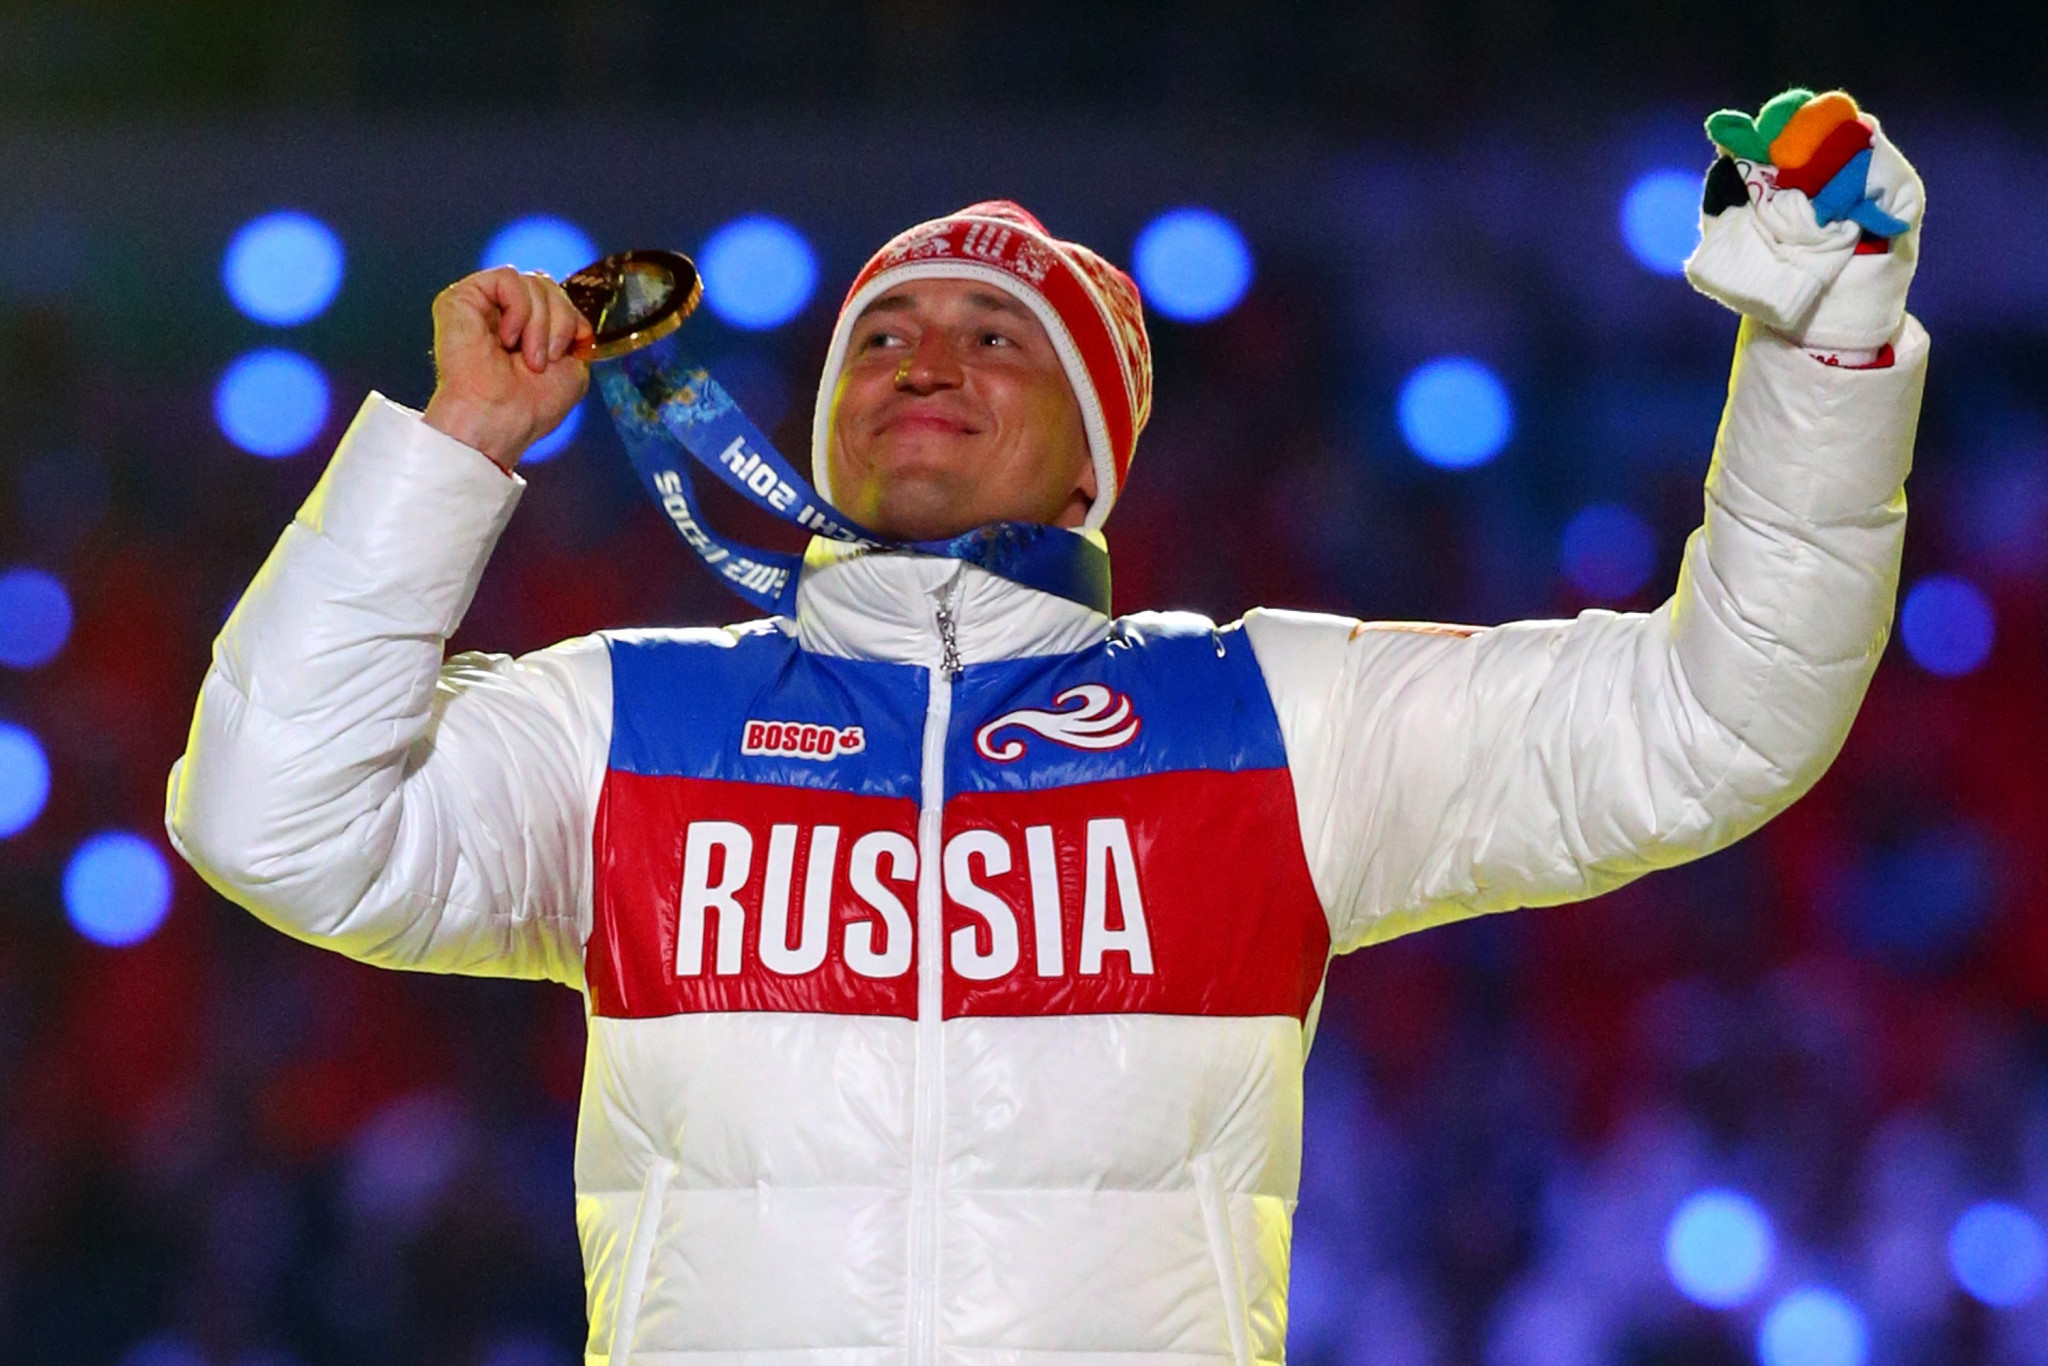 Alexander Legkov has been stripped of Olympic gold medals ©Getty Images